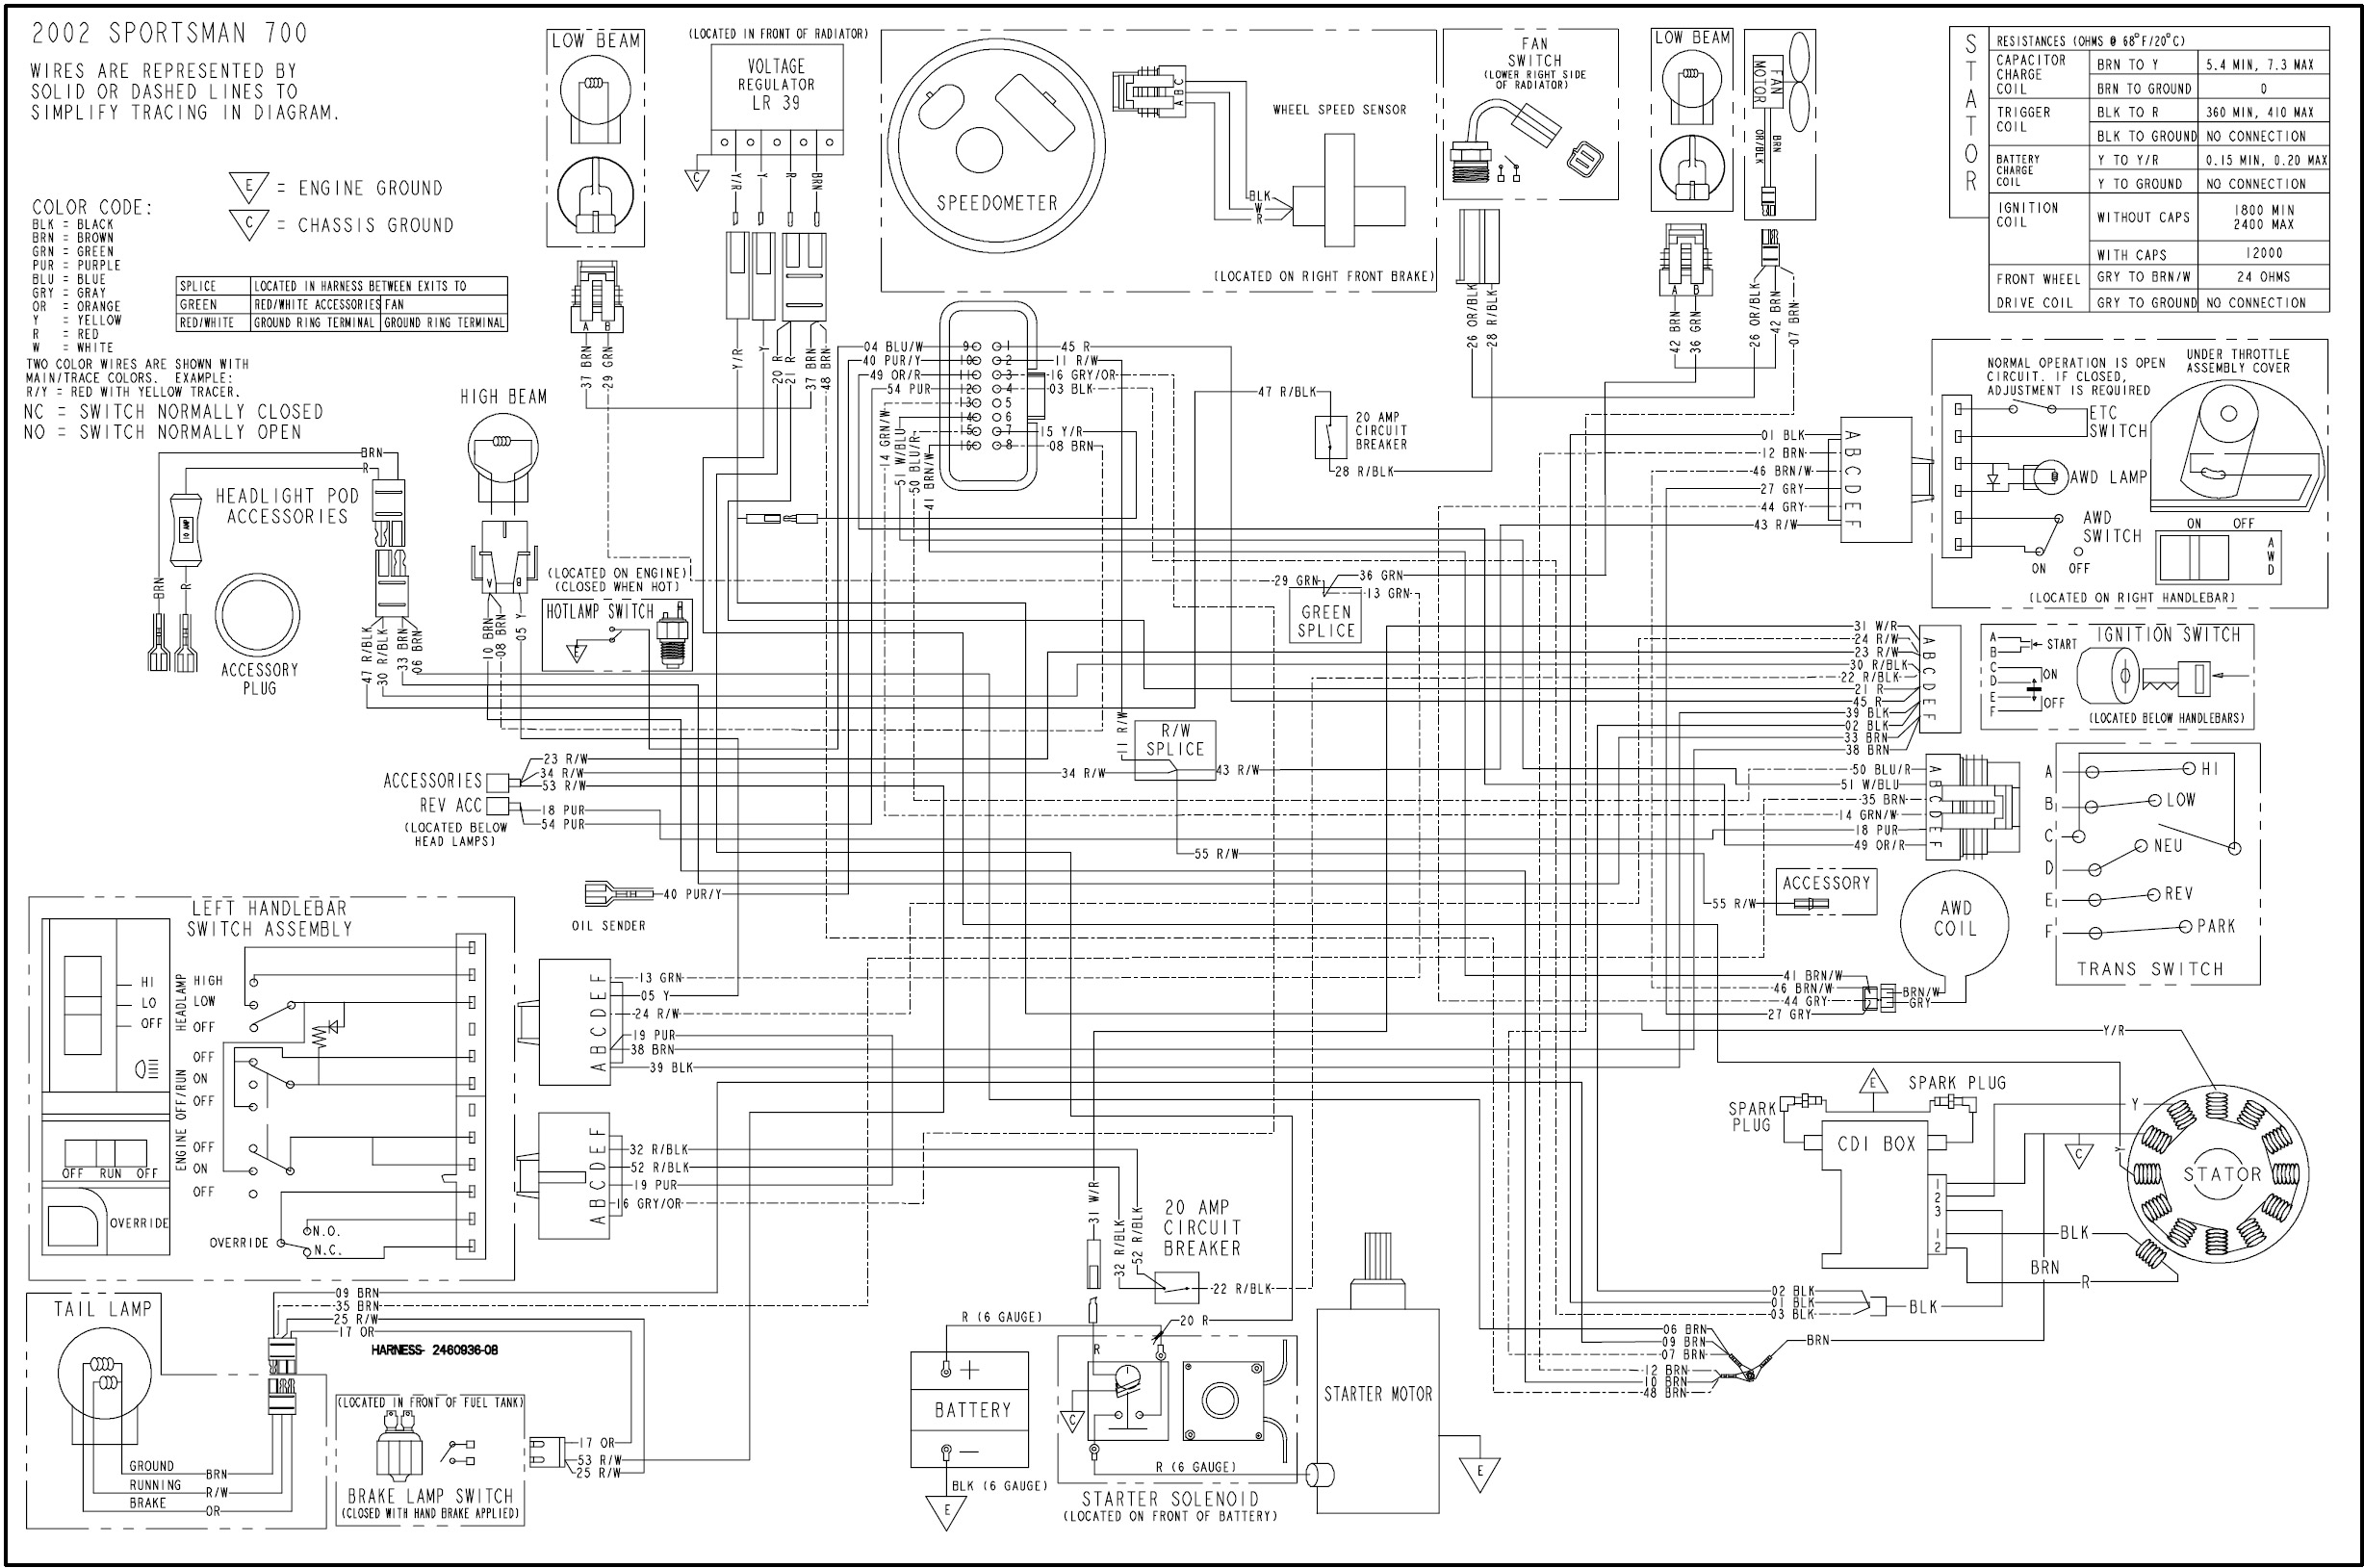 wiring diagram 2000 polaris sportsman 500 the wiring diagram polaris sportsman 700 wiring diagram polaris printable wiring diagram